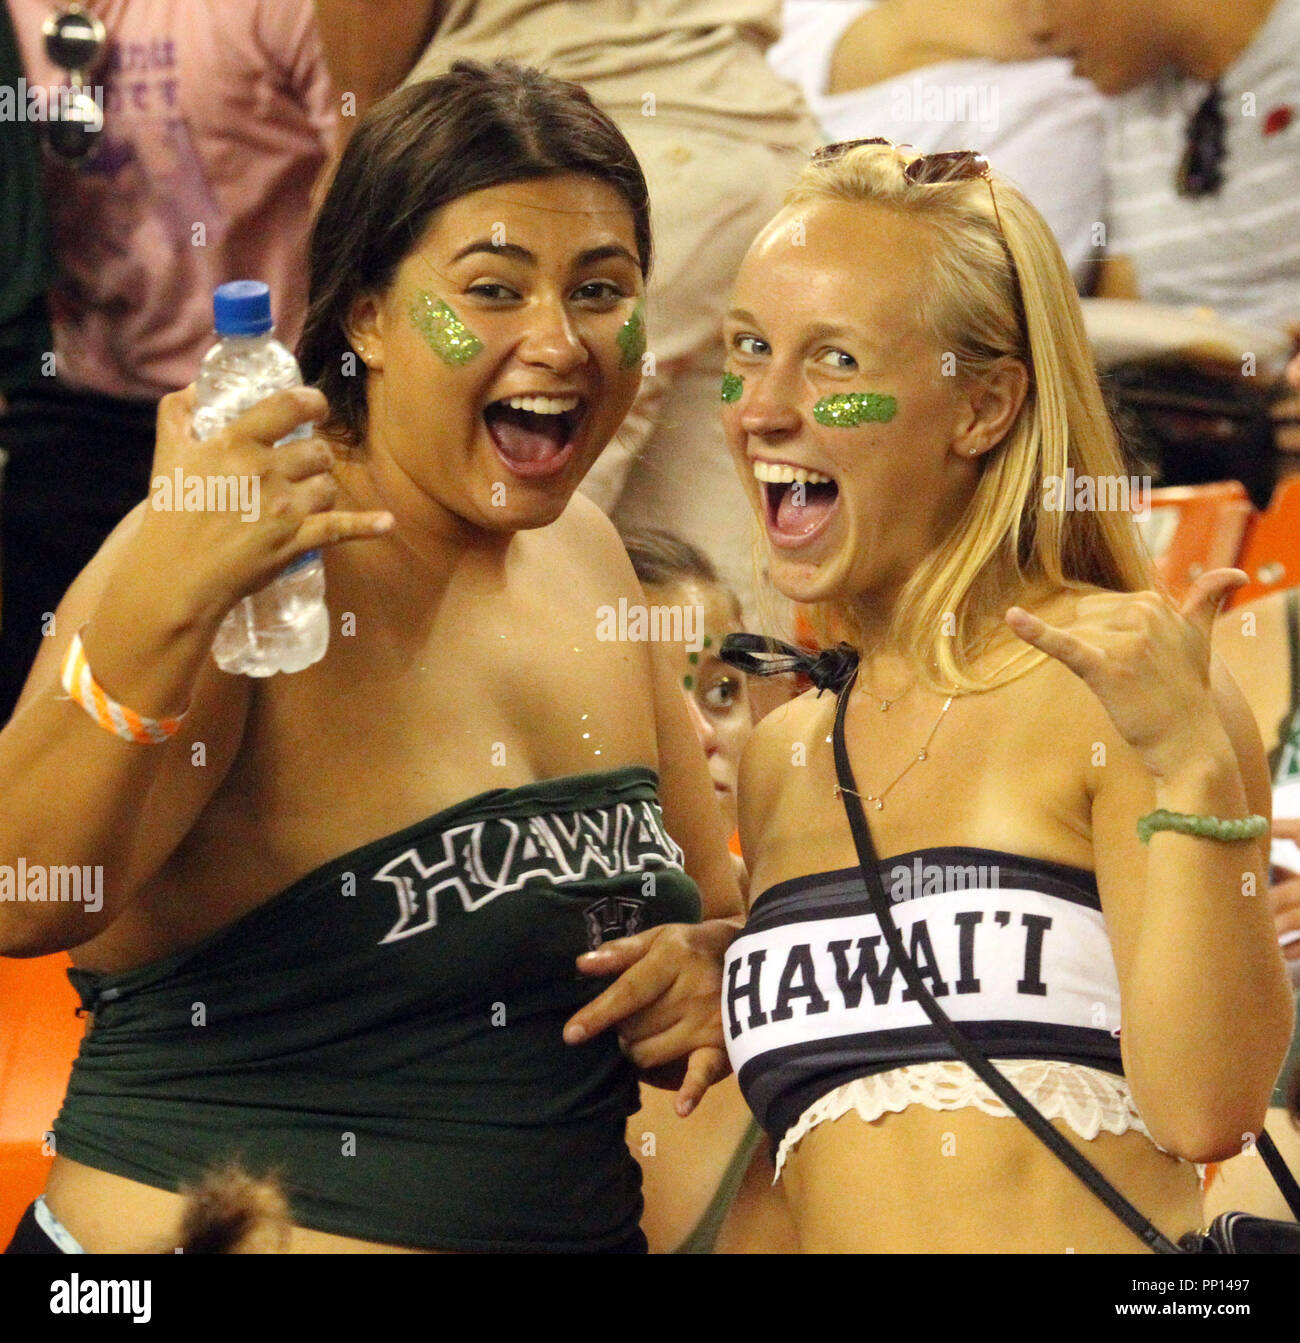 September 22, 2018 - Hawaii fans during a game between the Hawaii Rainbow Warriors and the Duquesne Dukes at Aloha Stadium in Honolulu, HI - Michael Sullivan/CSM Credit: Cal Sport Media/Alamy Live News Stock Photo